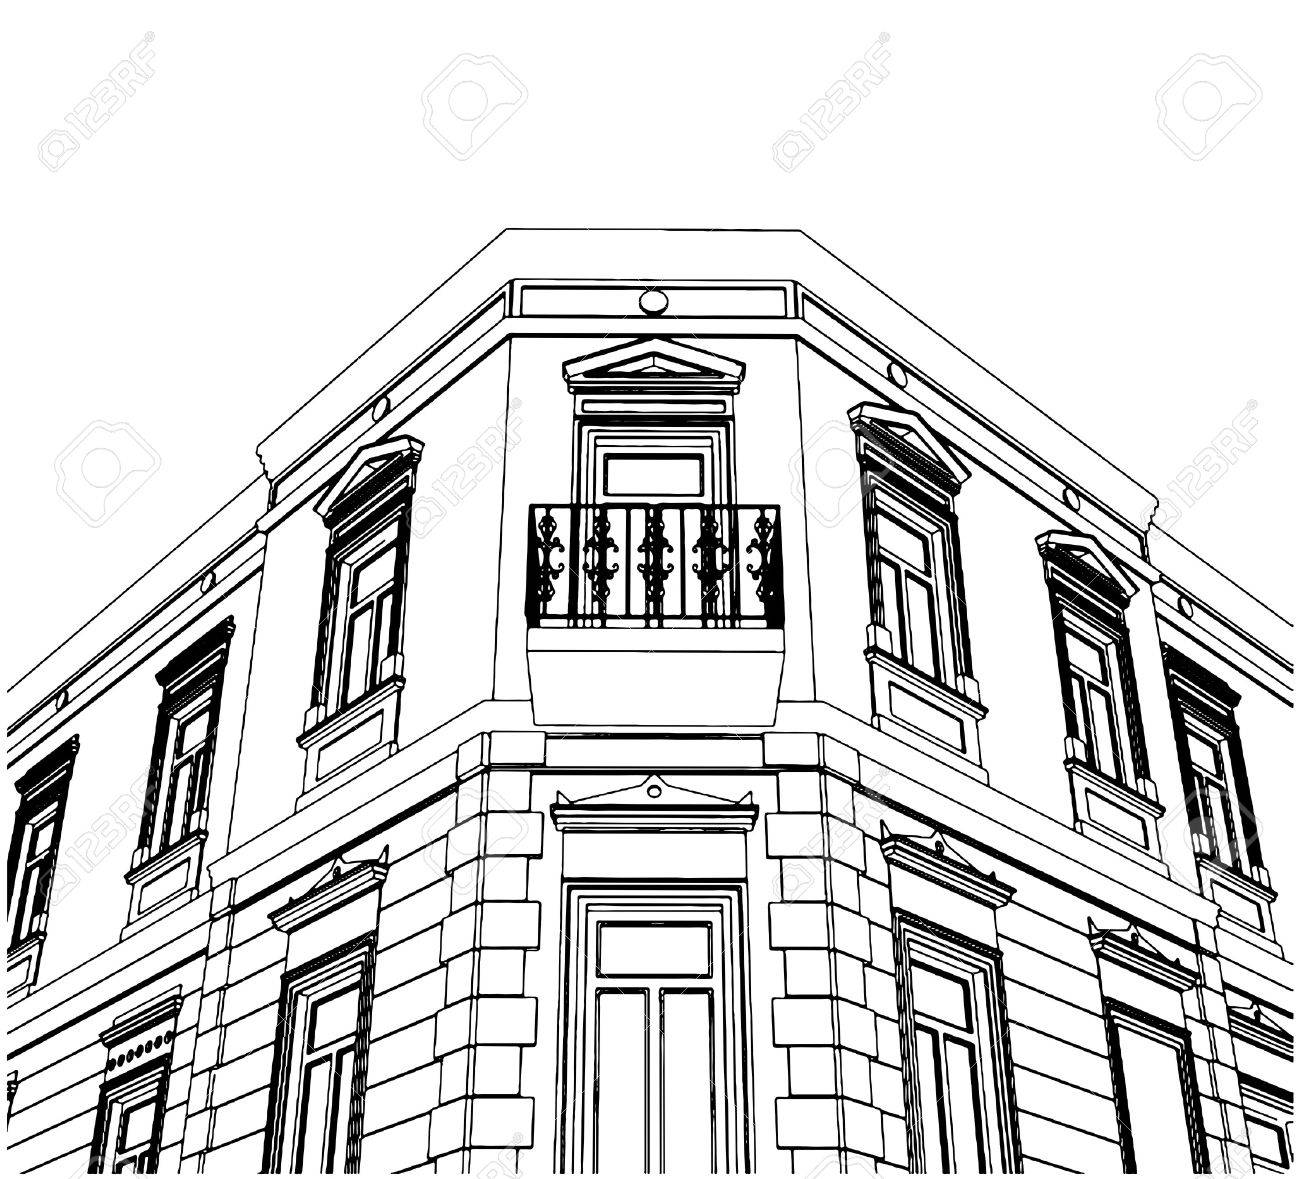 Building Corner Eclectic House Royalty Free Cliparts Vectors And